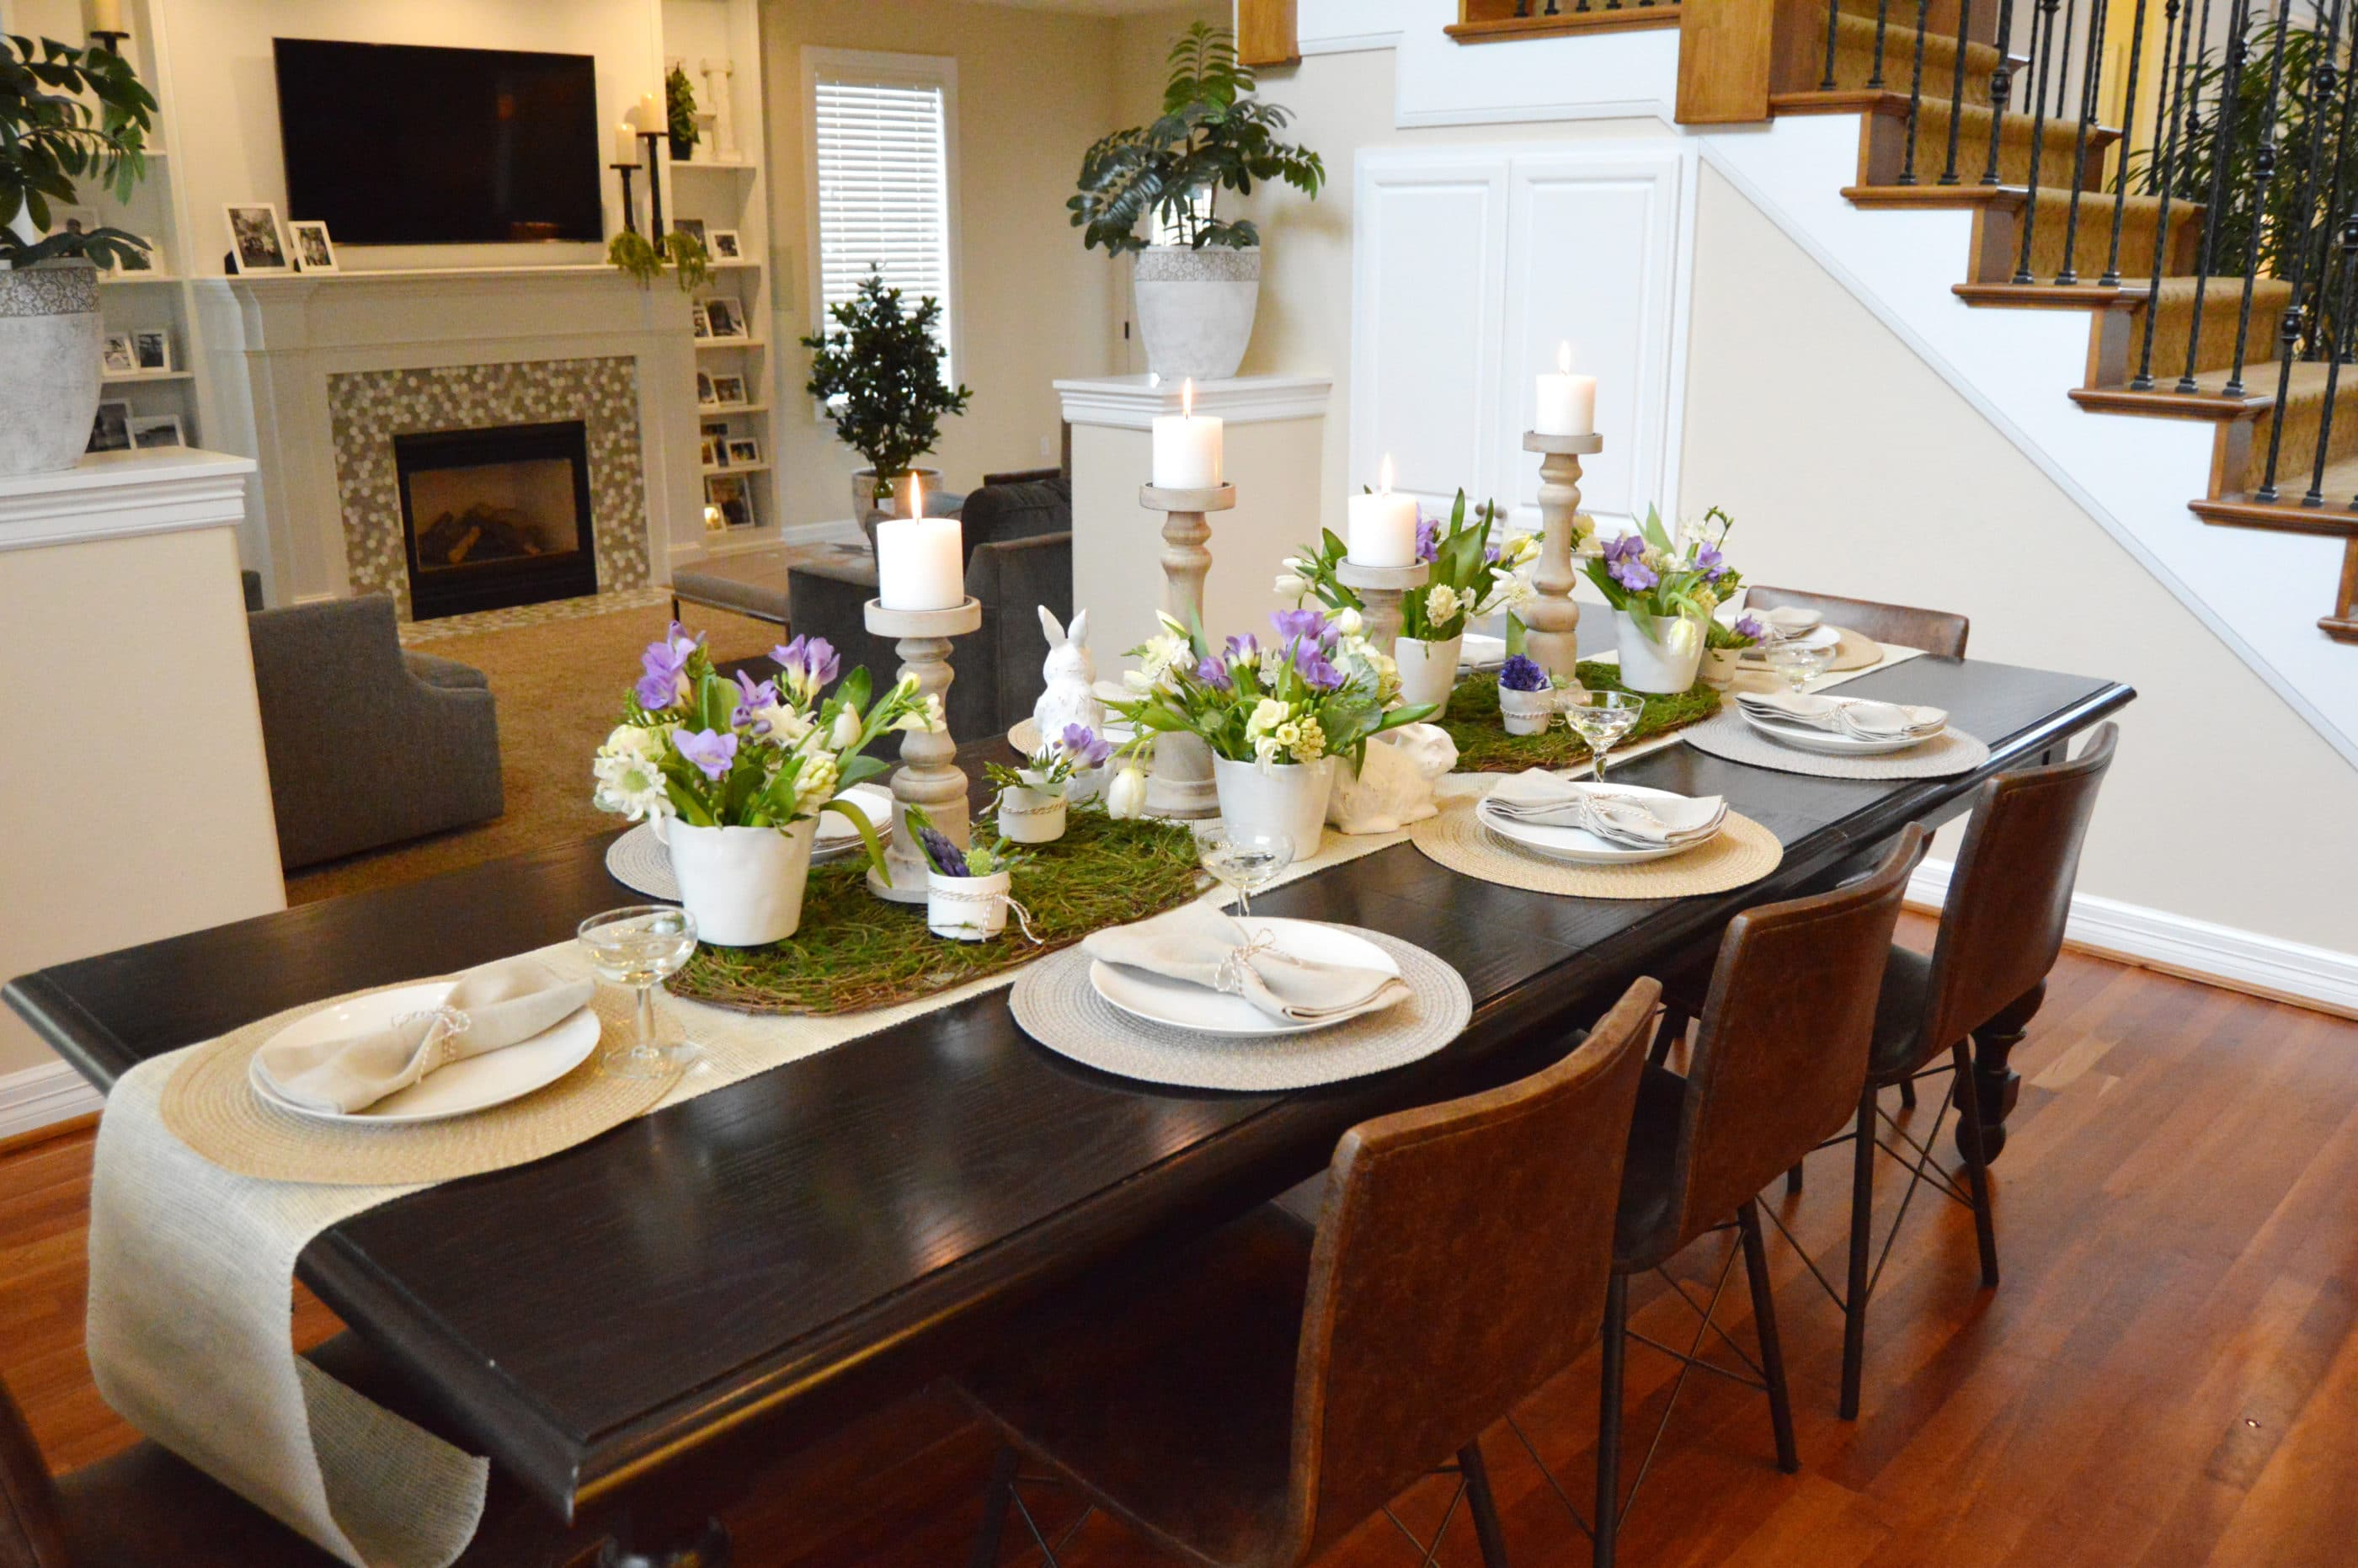 color season styled spring table decor